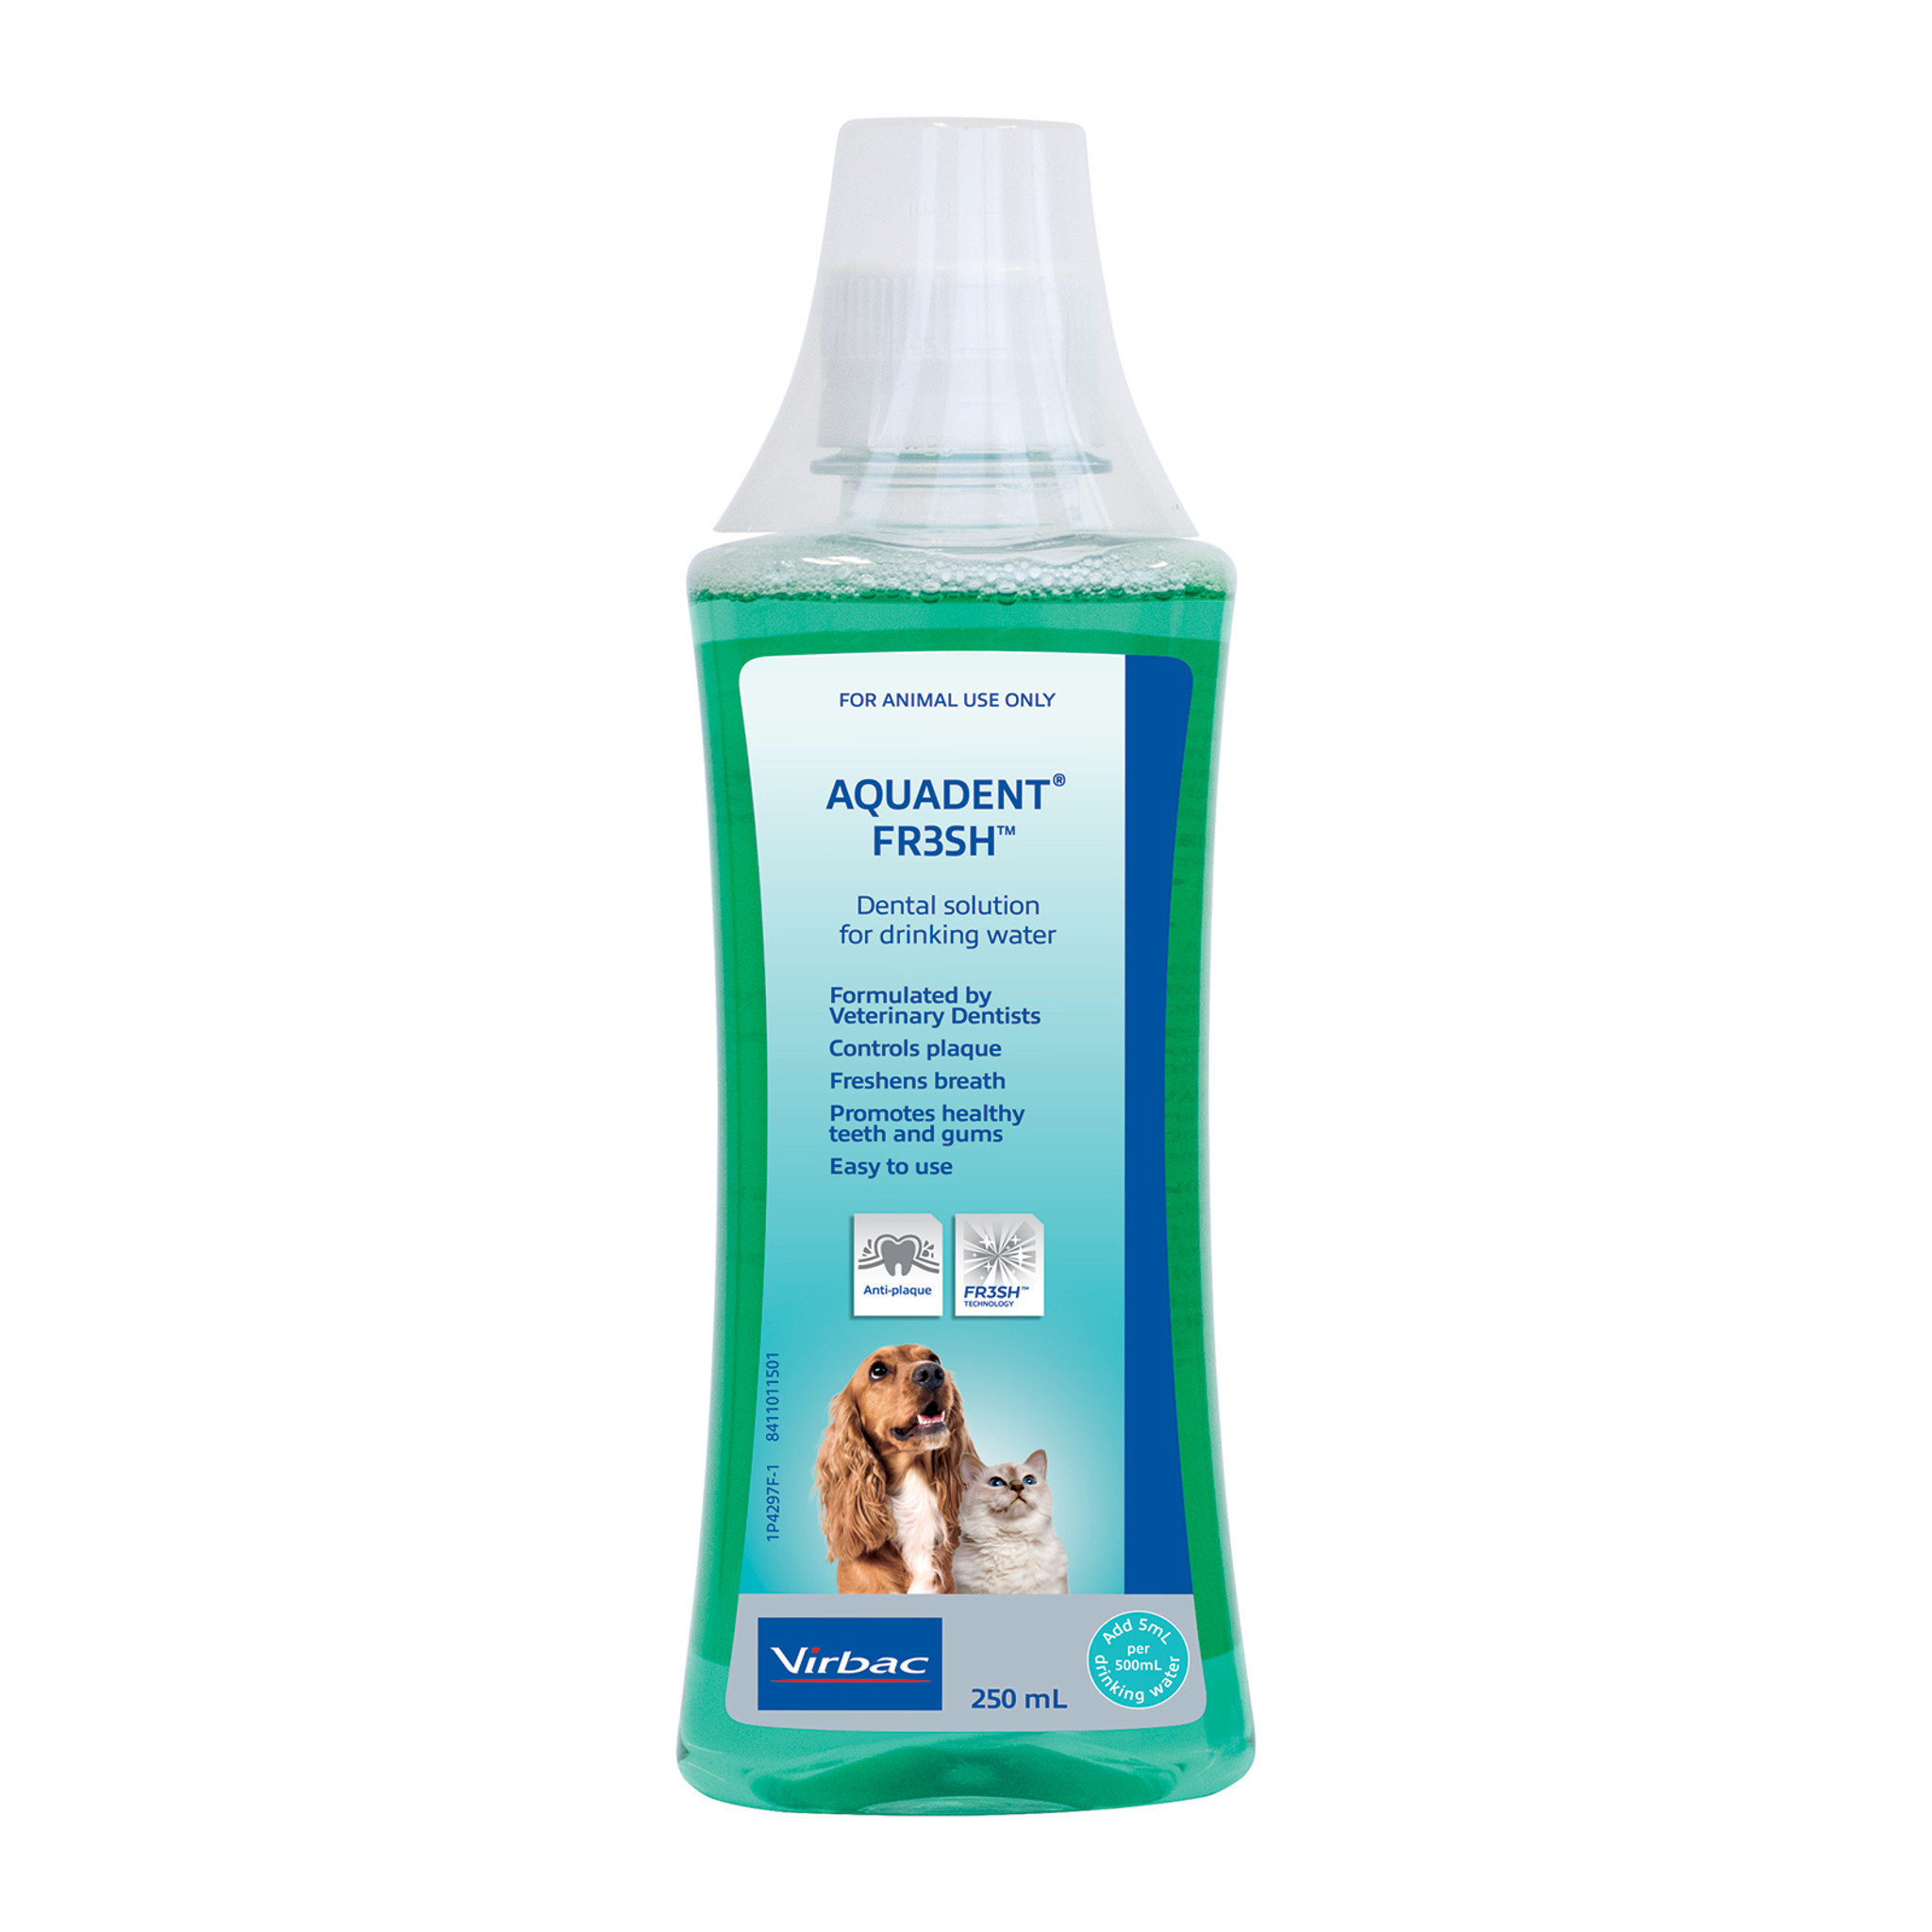 Aquadent Fresh Dental Water Additive for Dogs and Cats - 250 mL